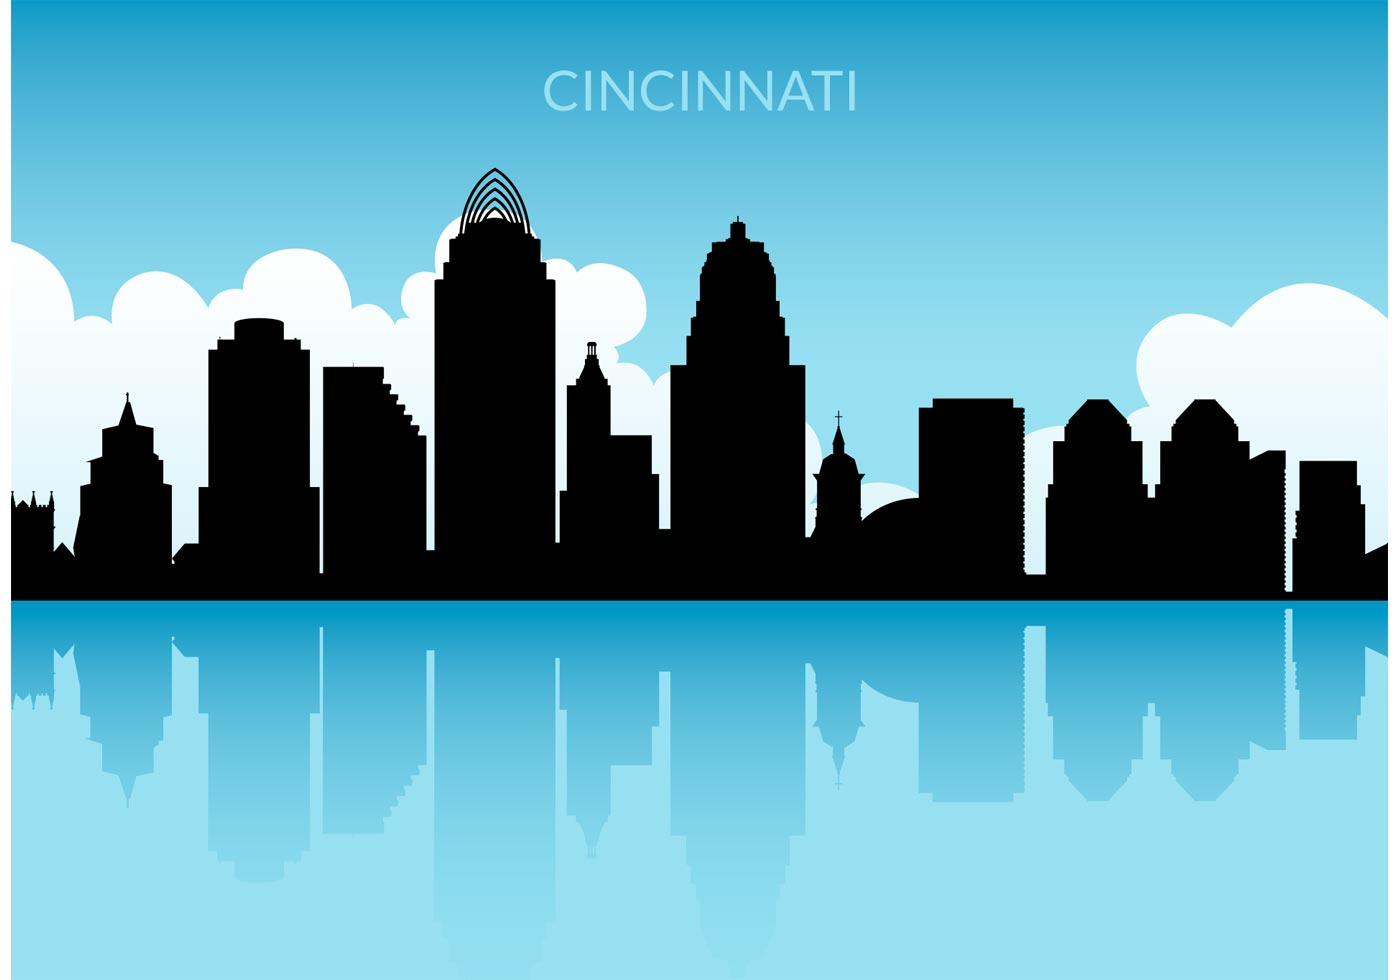 Free Cincinnati Skyline Vector - Download Free Vector Art, Stock ...: www.vecteezy.com/vector-art/89394-free-cincinnati-skyline-vector